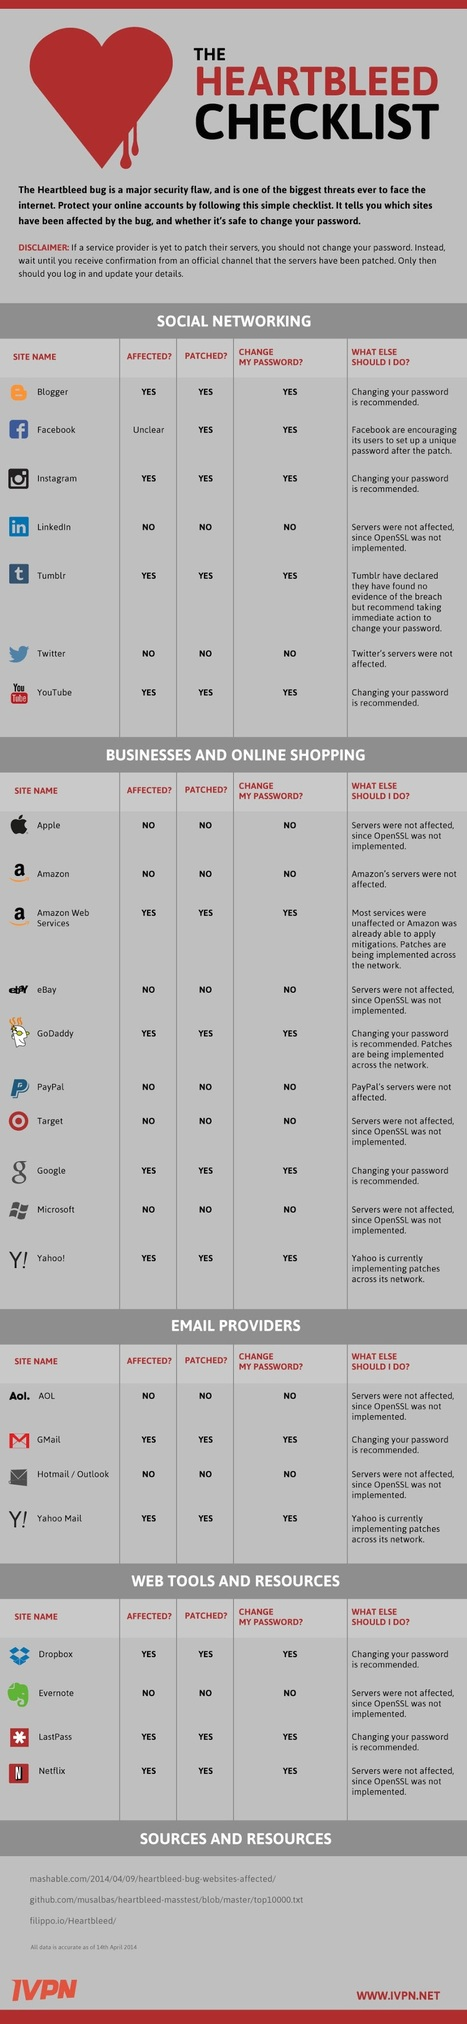 What Passwords to Change: The Heartbleed Checklist for Social Media Users | Entrepreneurs du Web | Scoop.it